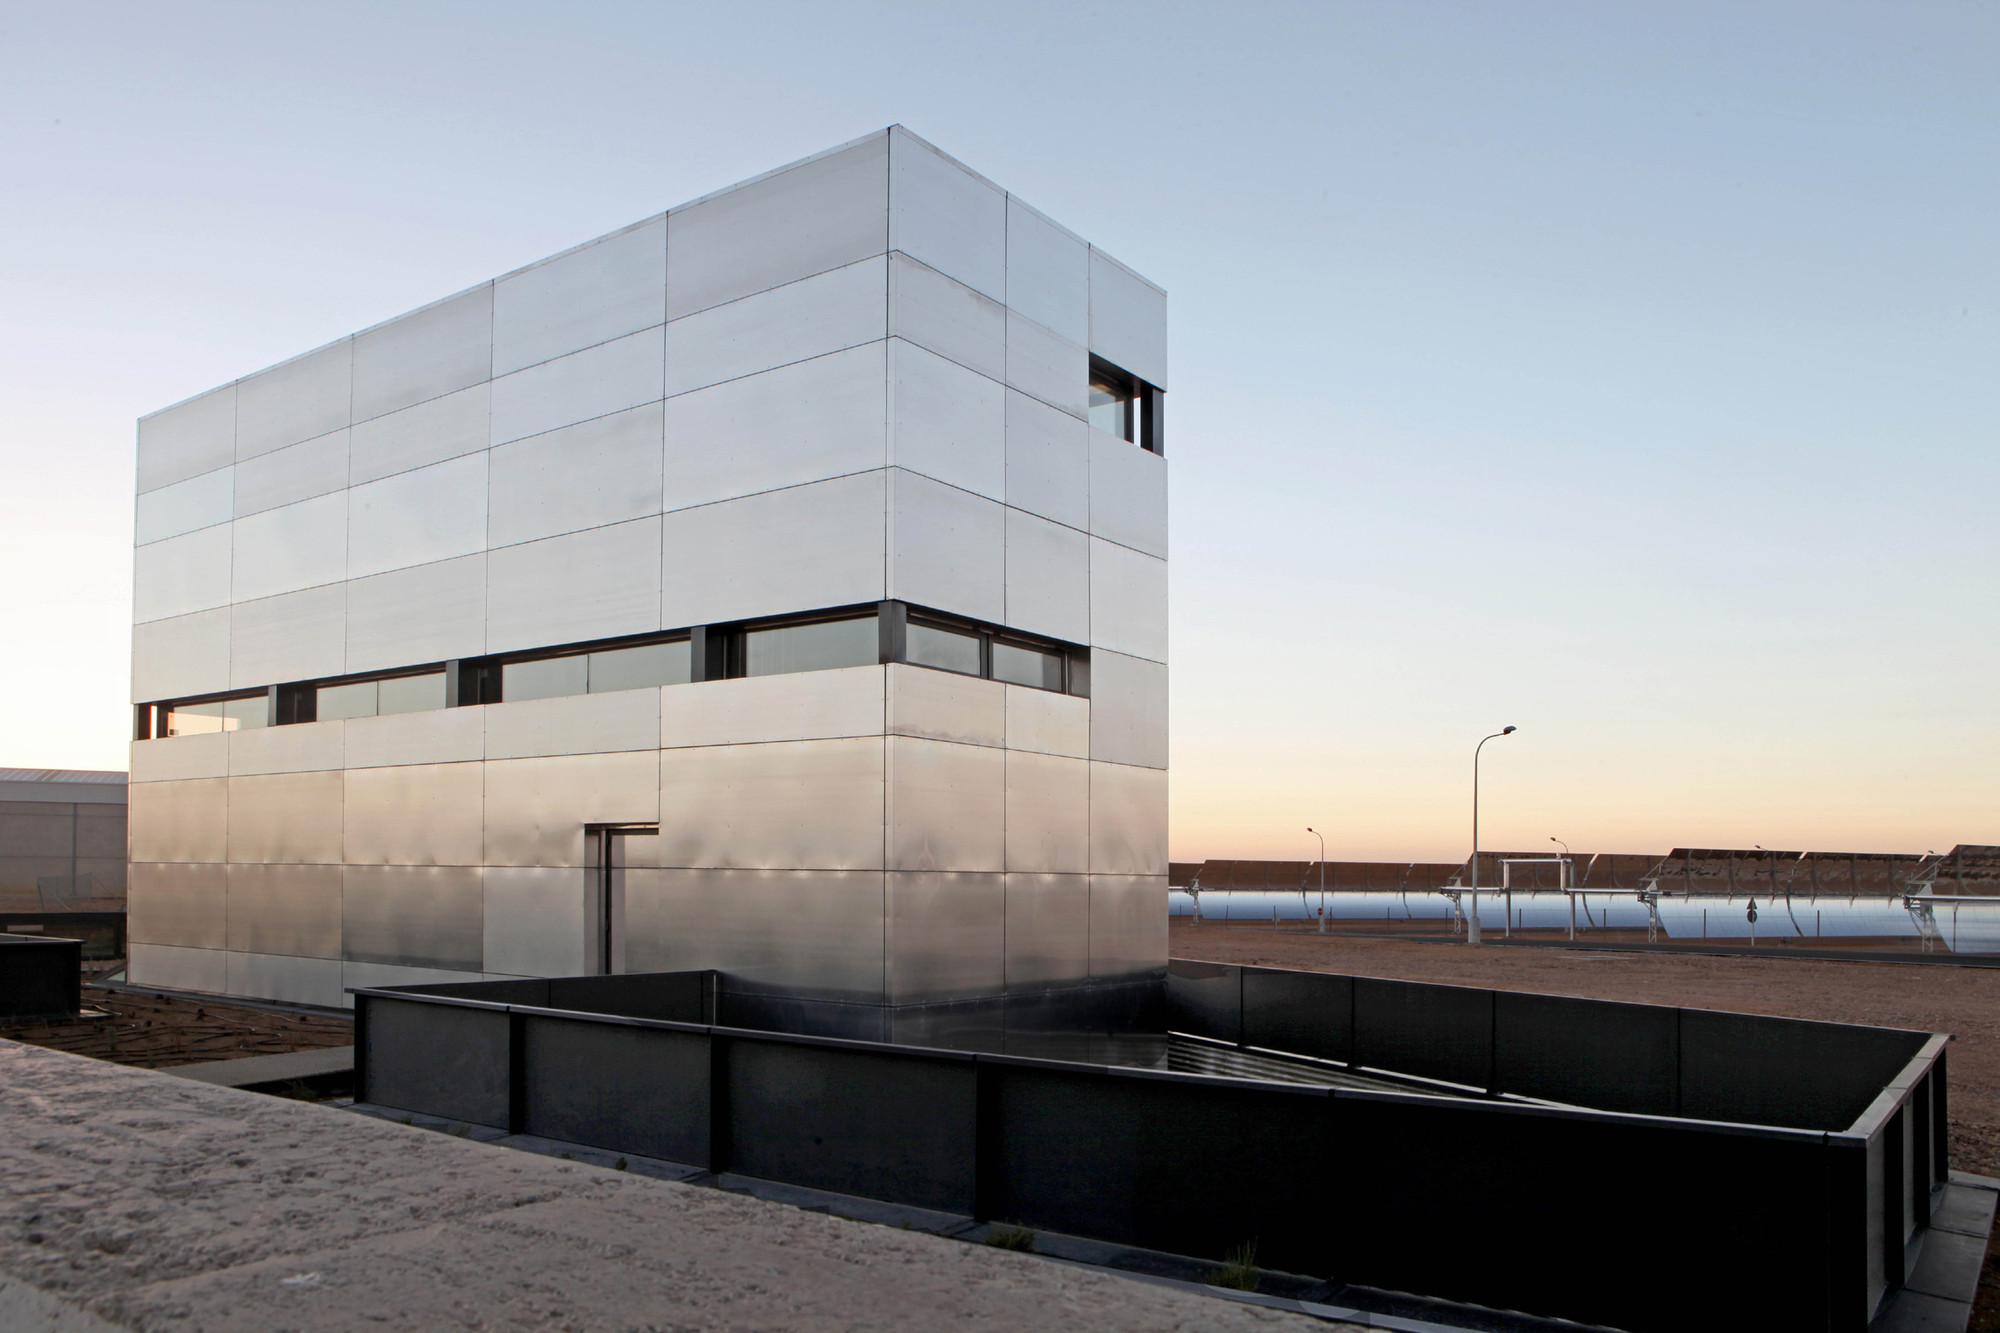 Multi-Purpose Building For Central Termosolar Astexol-2 / Sáenz De Oiza Arquitectos, © Carlos Arriaga